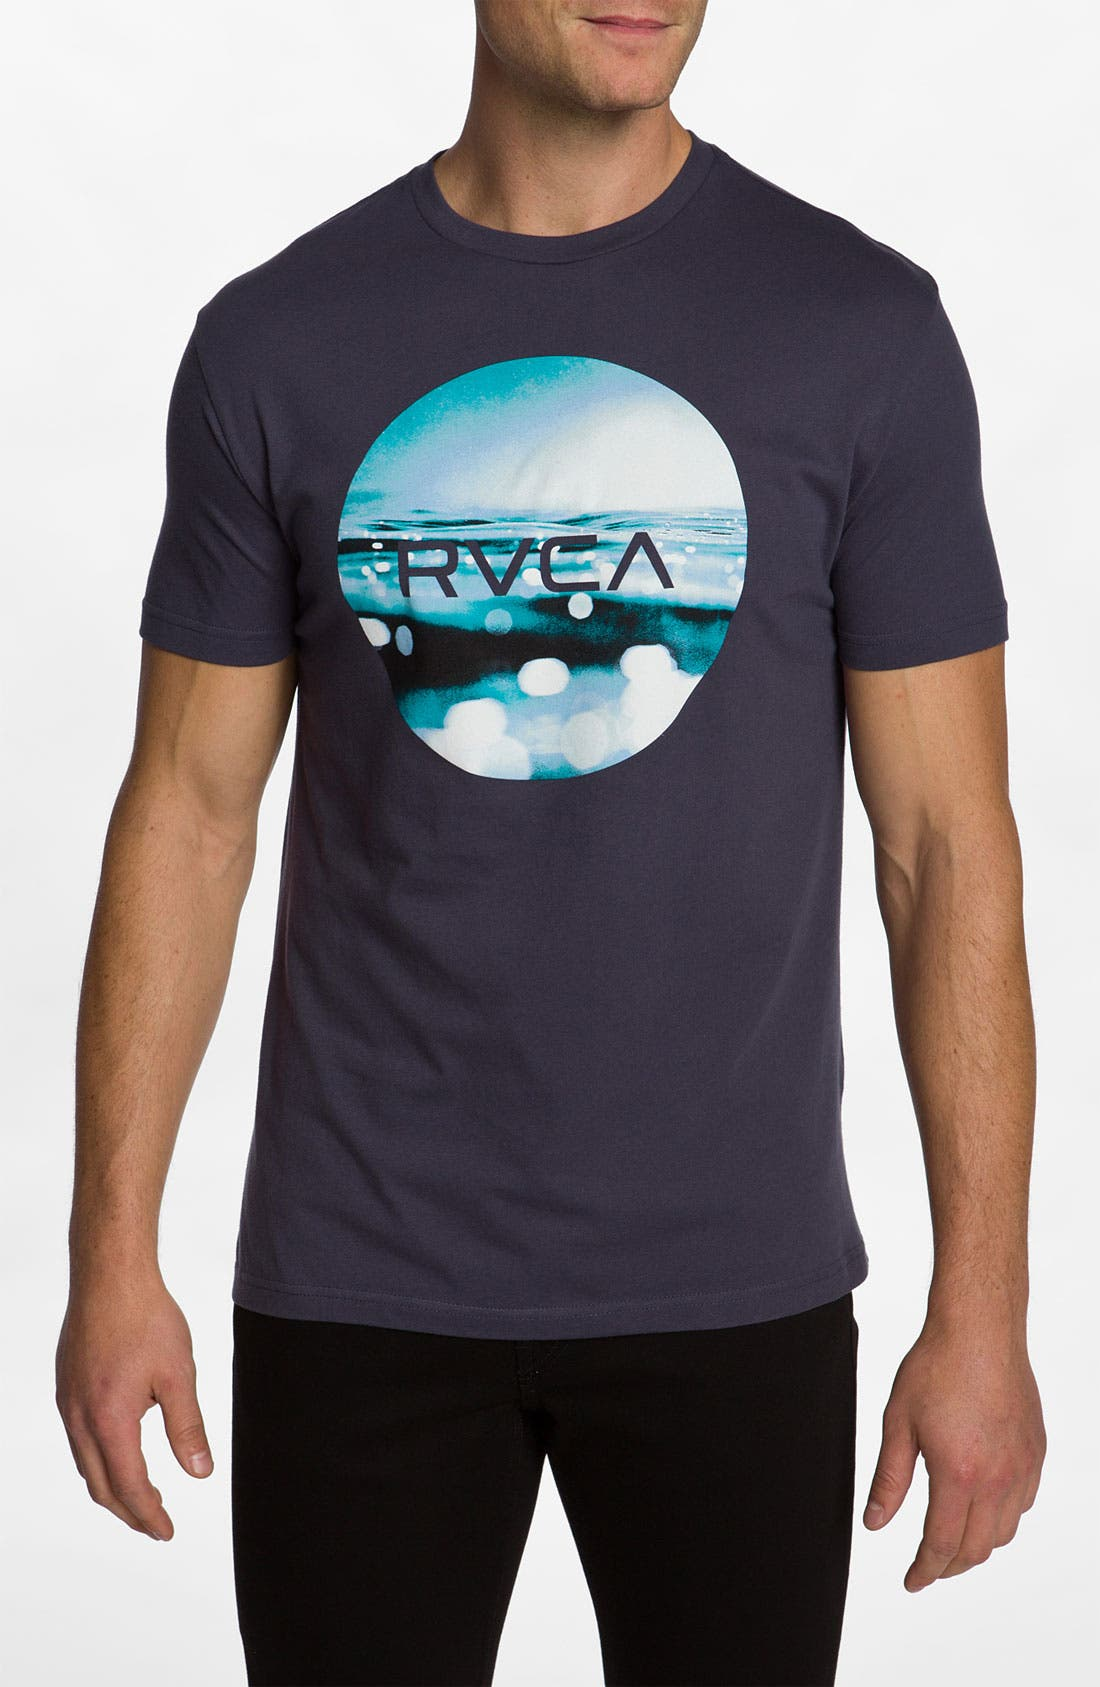 Alternate Image 1 Selected - RVCA 'Upside Down Underwater' T-Shirt